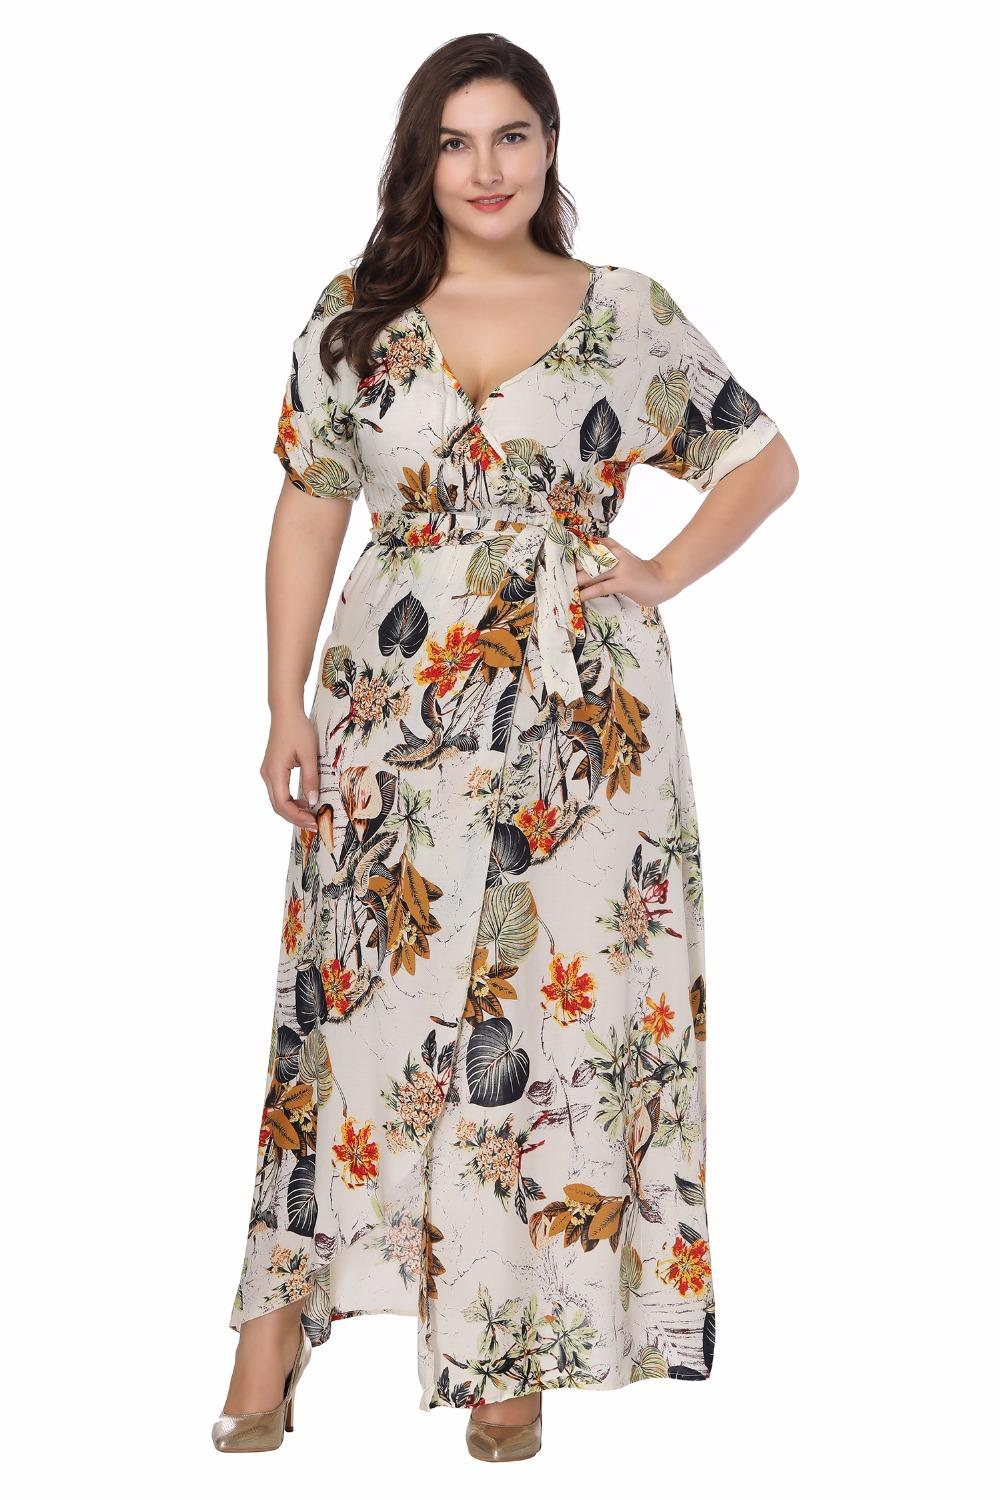 2019 2018 Summer Maxi Dress Plus Size Women Clothing Floral Printed ...